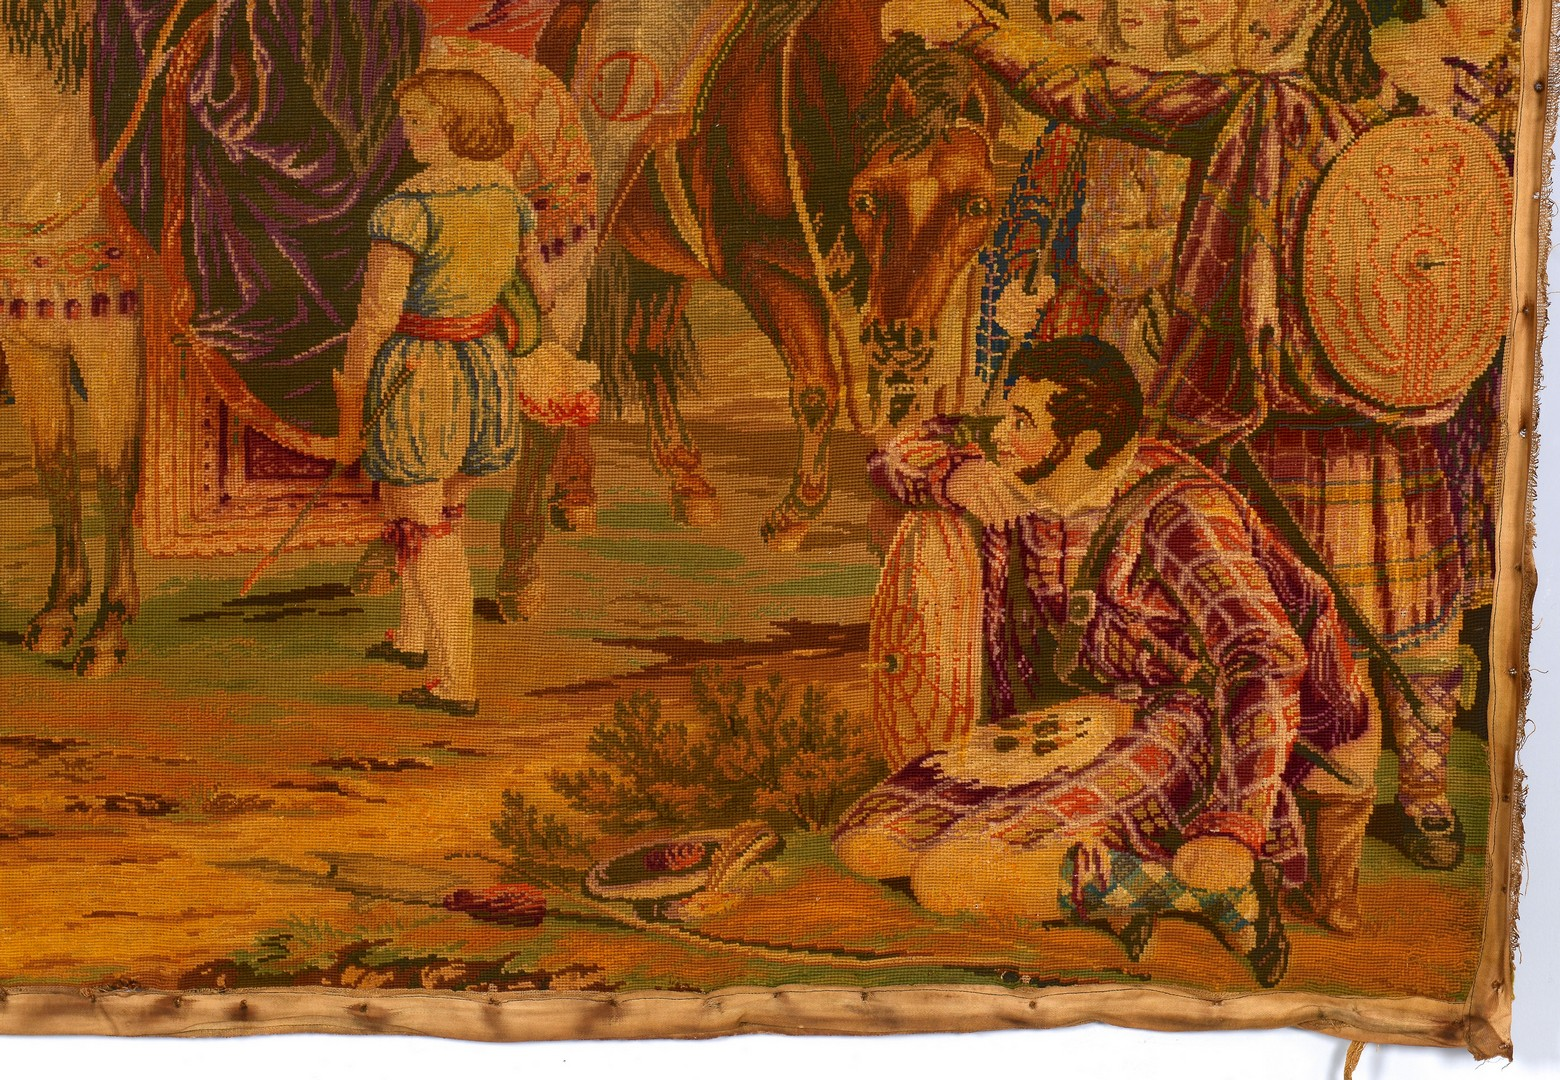 Lot 847: 19th c. Embroidered Tapestry, Medieval Scene